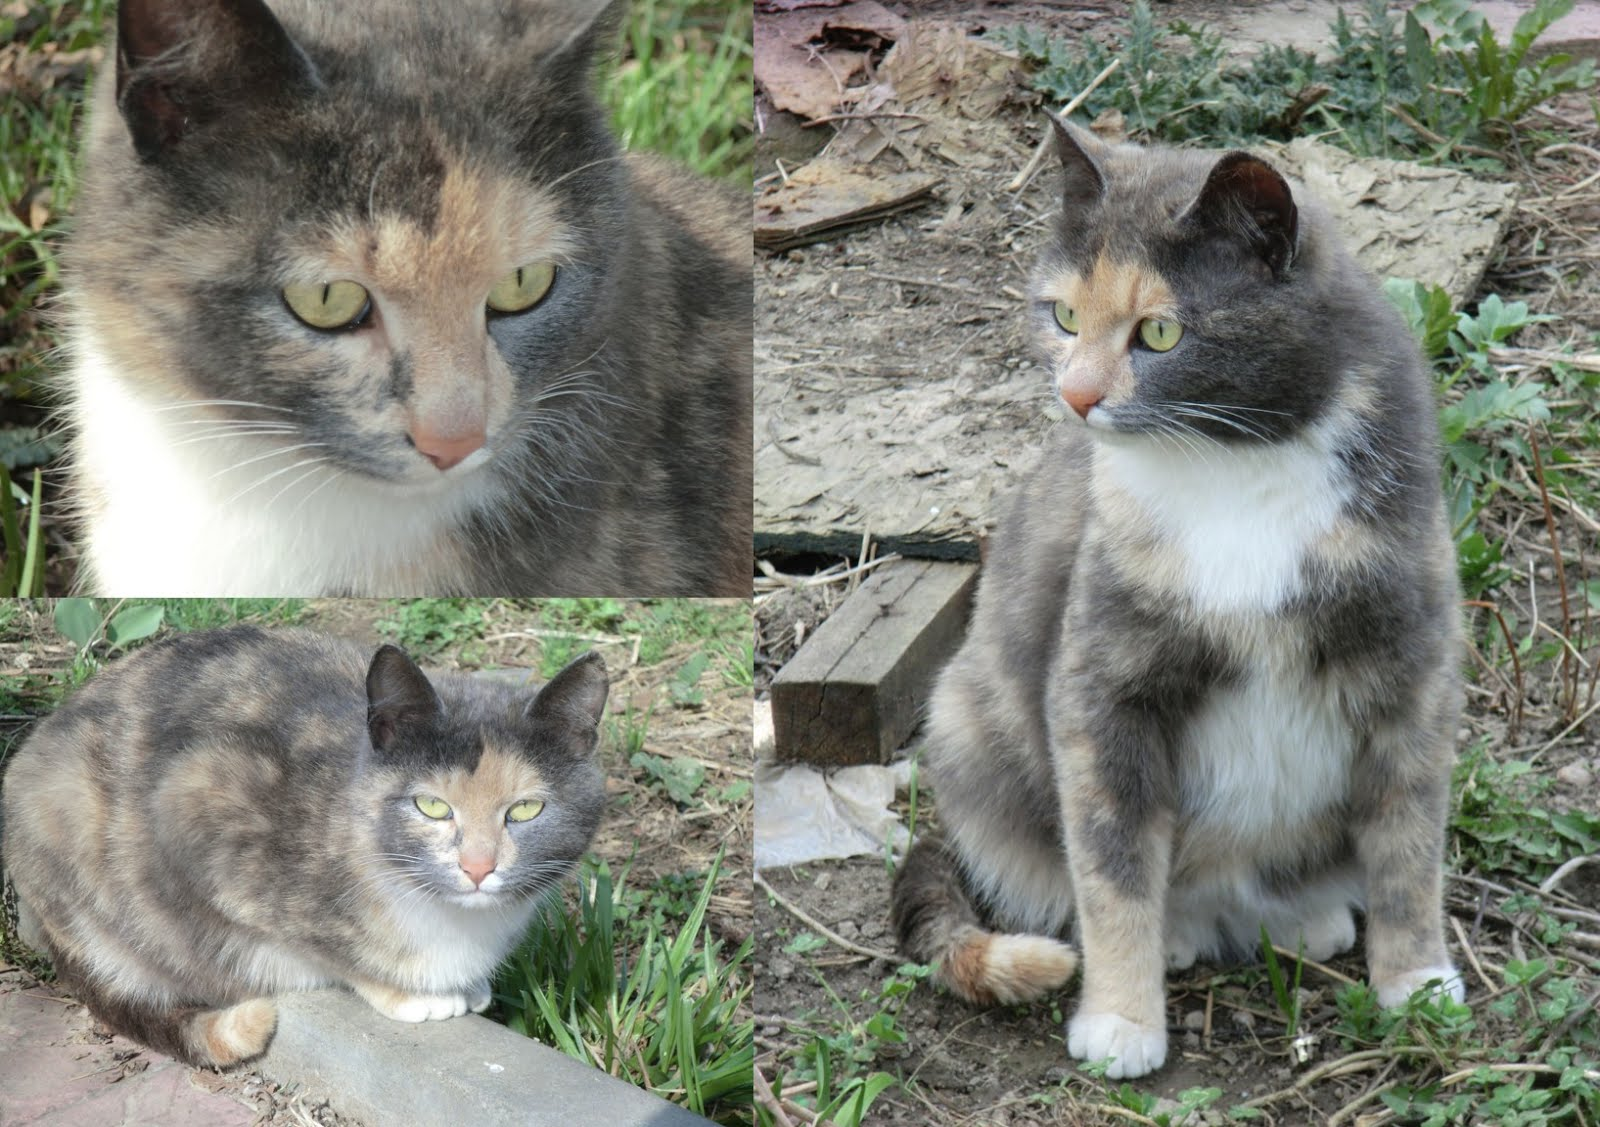 The outside cat, Mishi